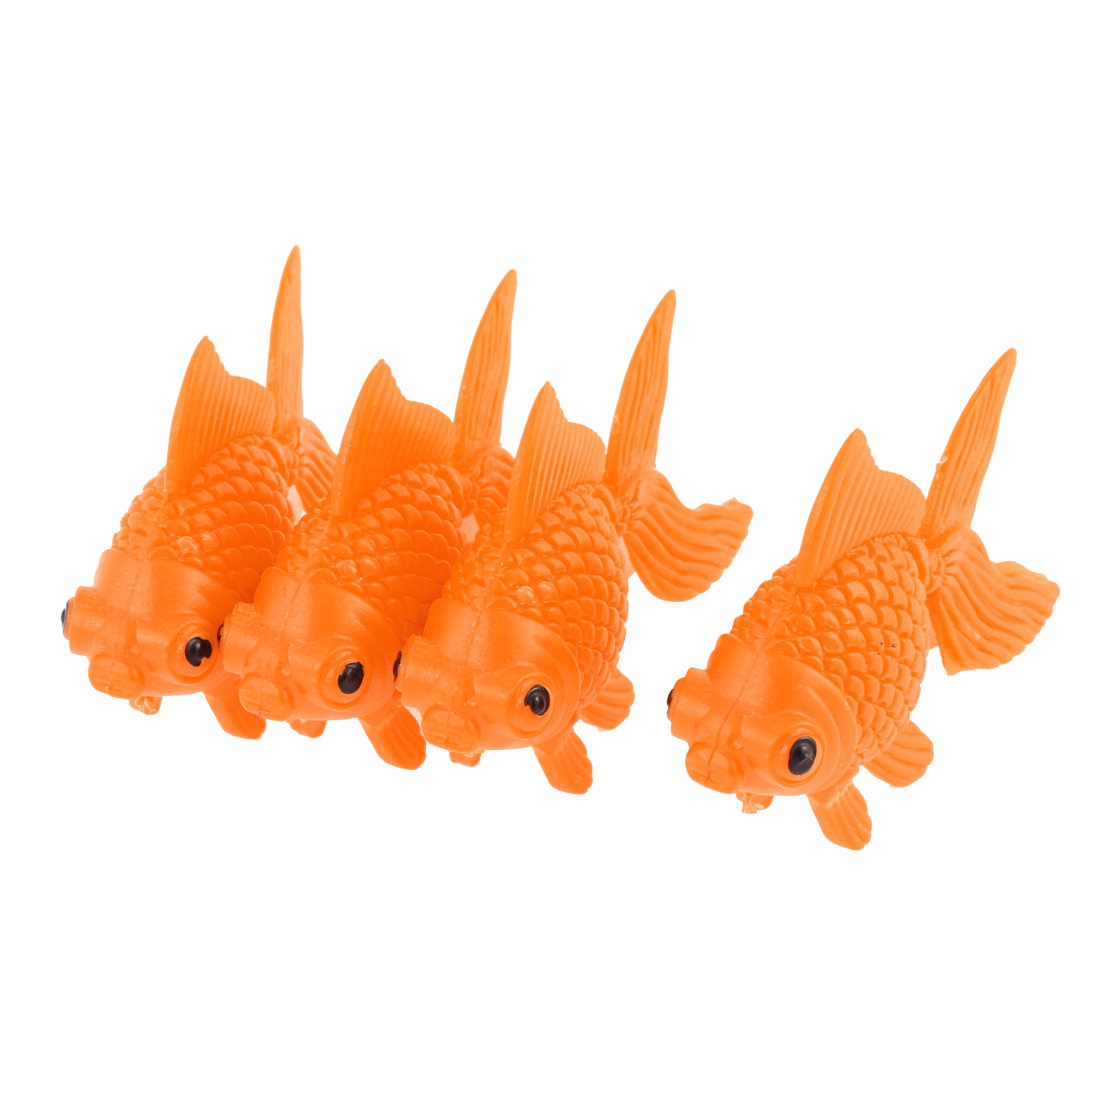 Orange Plastic Fish Tank Ornament Artificial Swing Tail Goldfish 4 Pcs